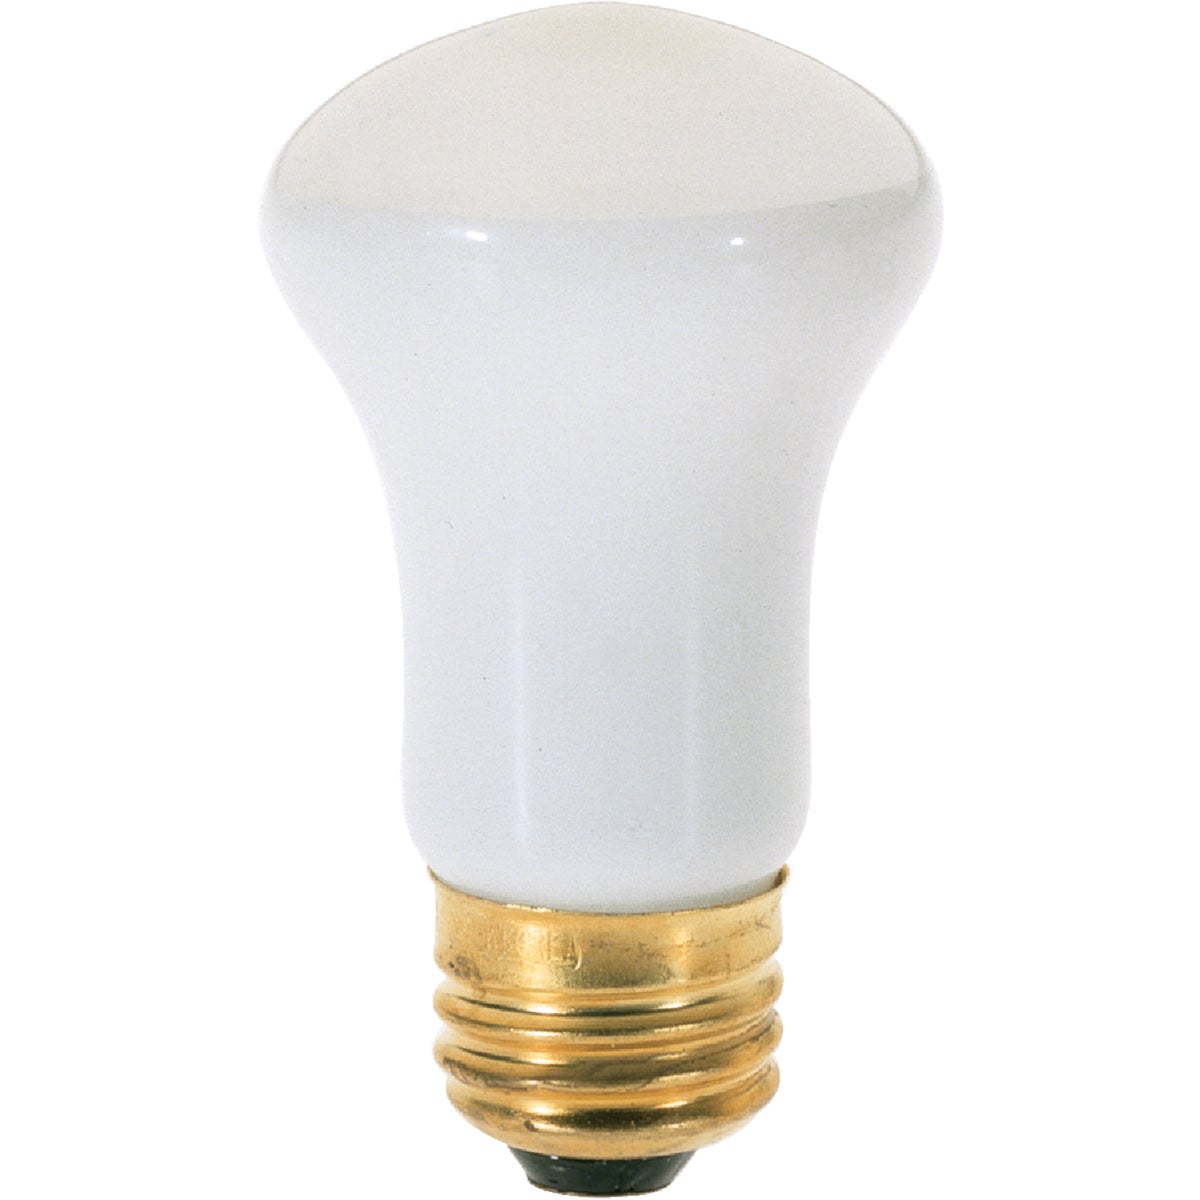 40W CLR MED TRACK BULB - 25781 by G E Lighting